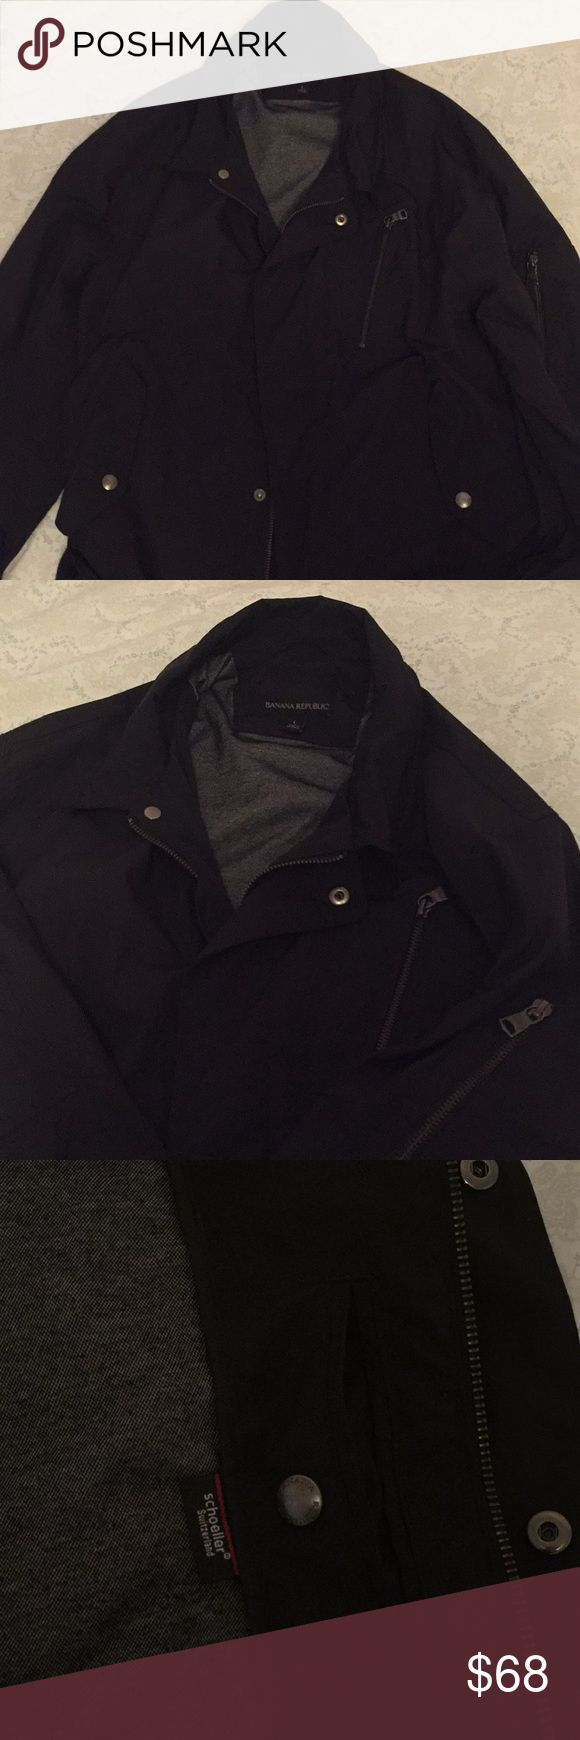 Luxe Weather proof Bomber Men's Large! A partnership between Banana Republic and Schoeller of Switzerland!  Very high quality and super sleek Tom Ford / James Bond style!  I really wish it still fit me or that it weren't so rare so I could buy another! Banana Republic Jackets & Coats Bomber & Varsity